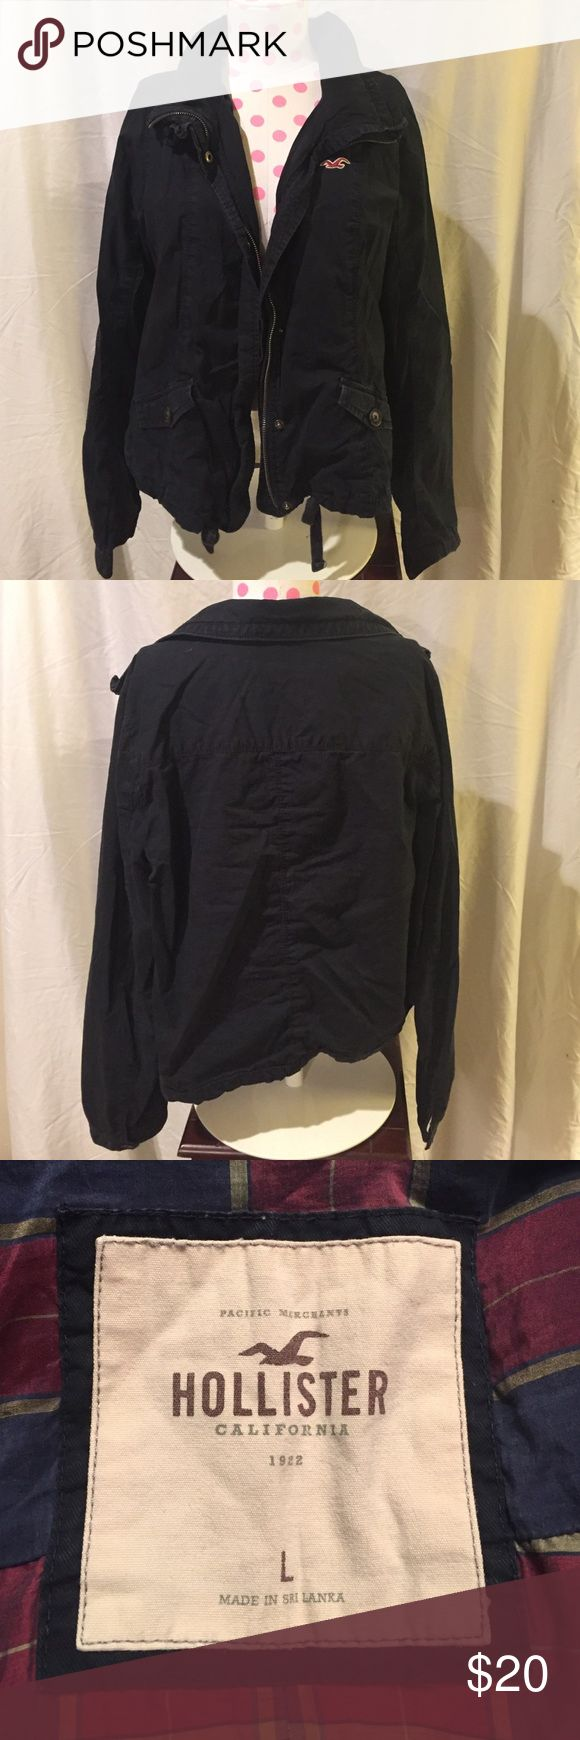 Hollister Jacket. Hollister Jacket. Excellent Worn Condition. Looks great layered with a hoodie. Hollister Jackets & Coats Utility Jackets